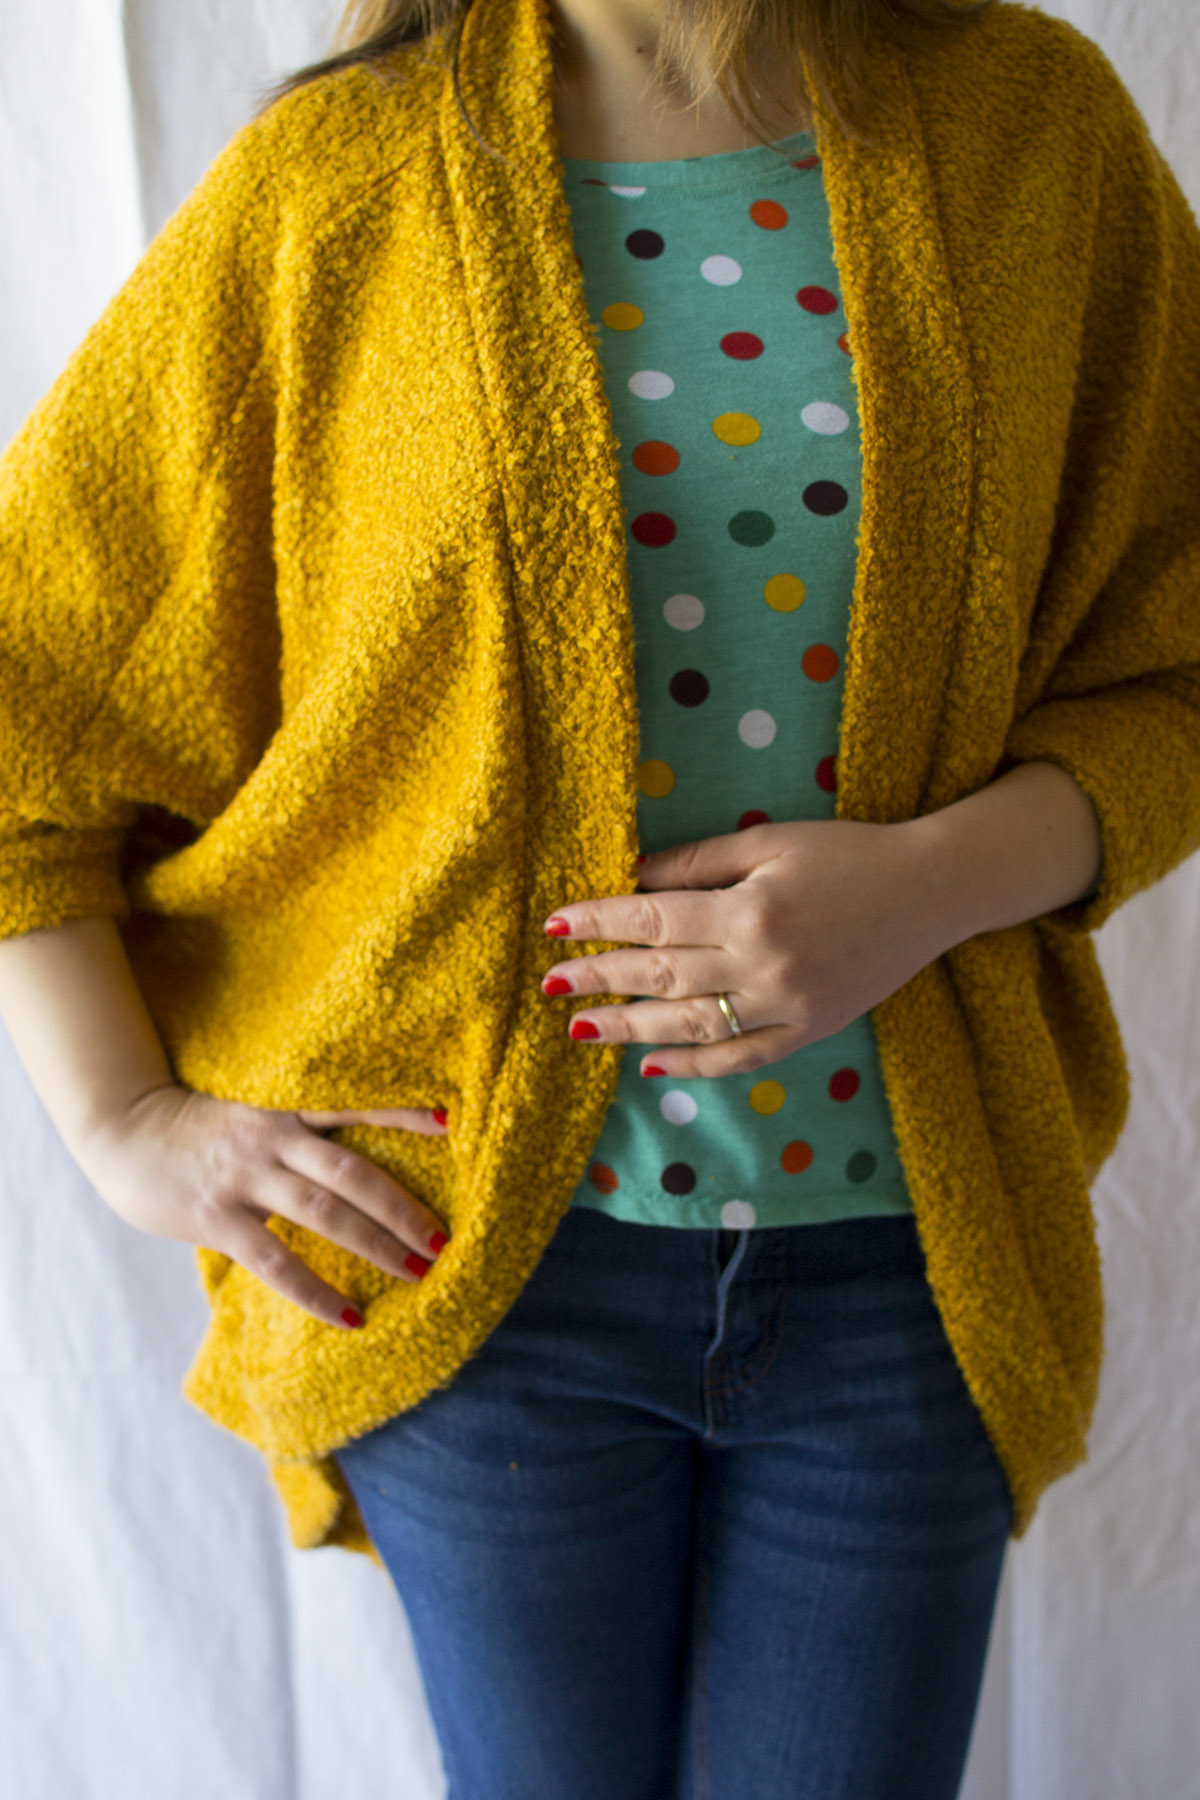 87c6b43700fd0 Sewing the Carrie Cardigan by Delia Creates - Athina Kakou